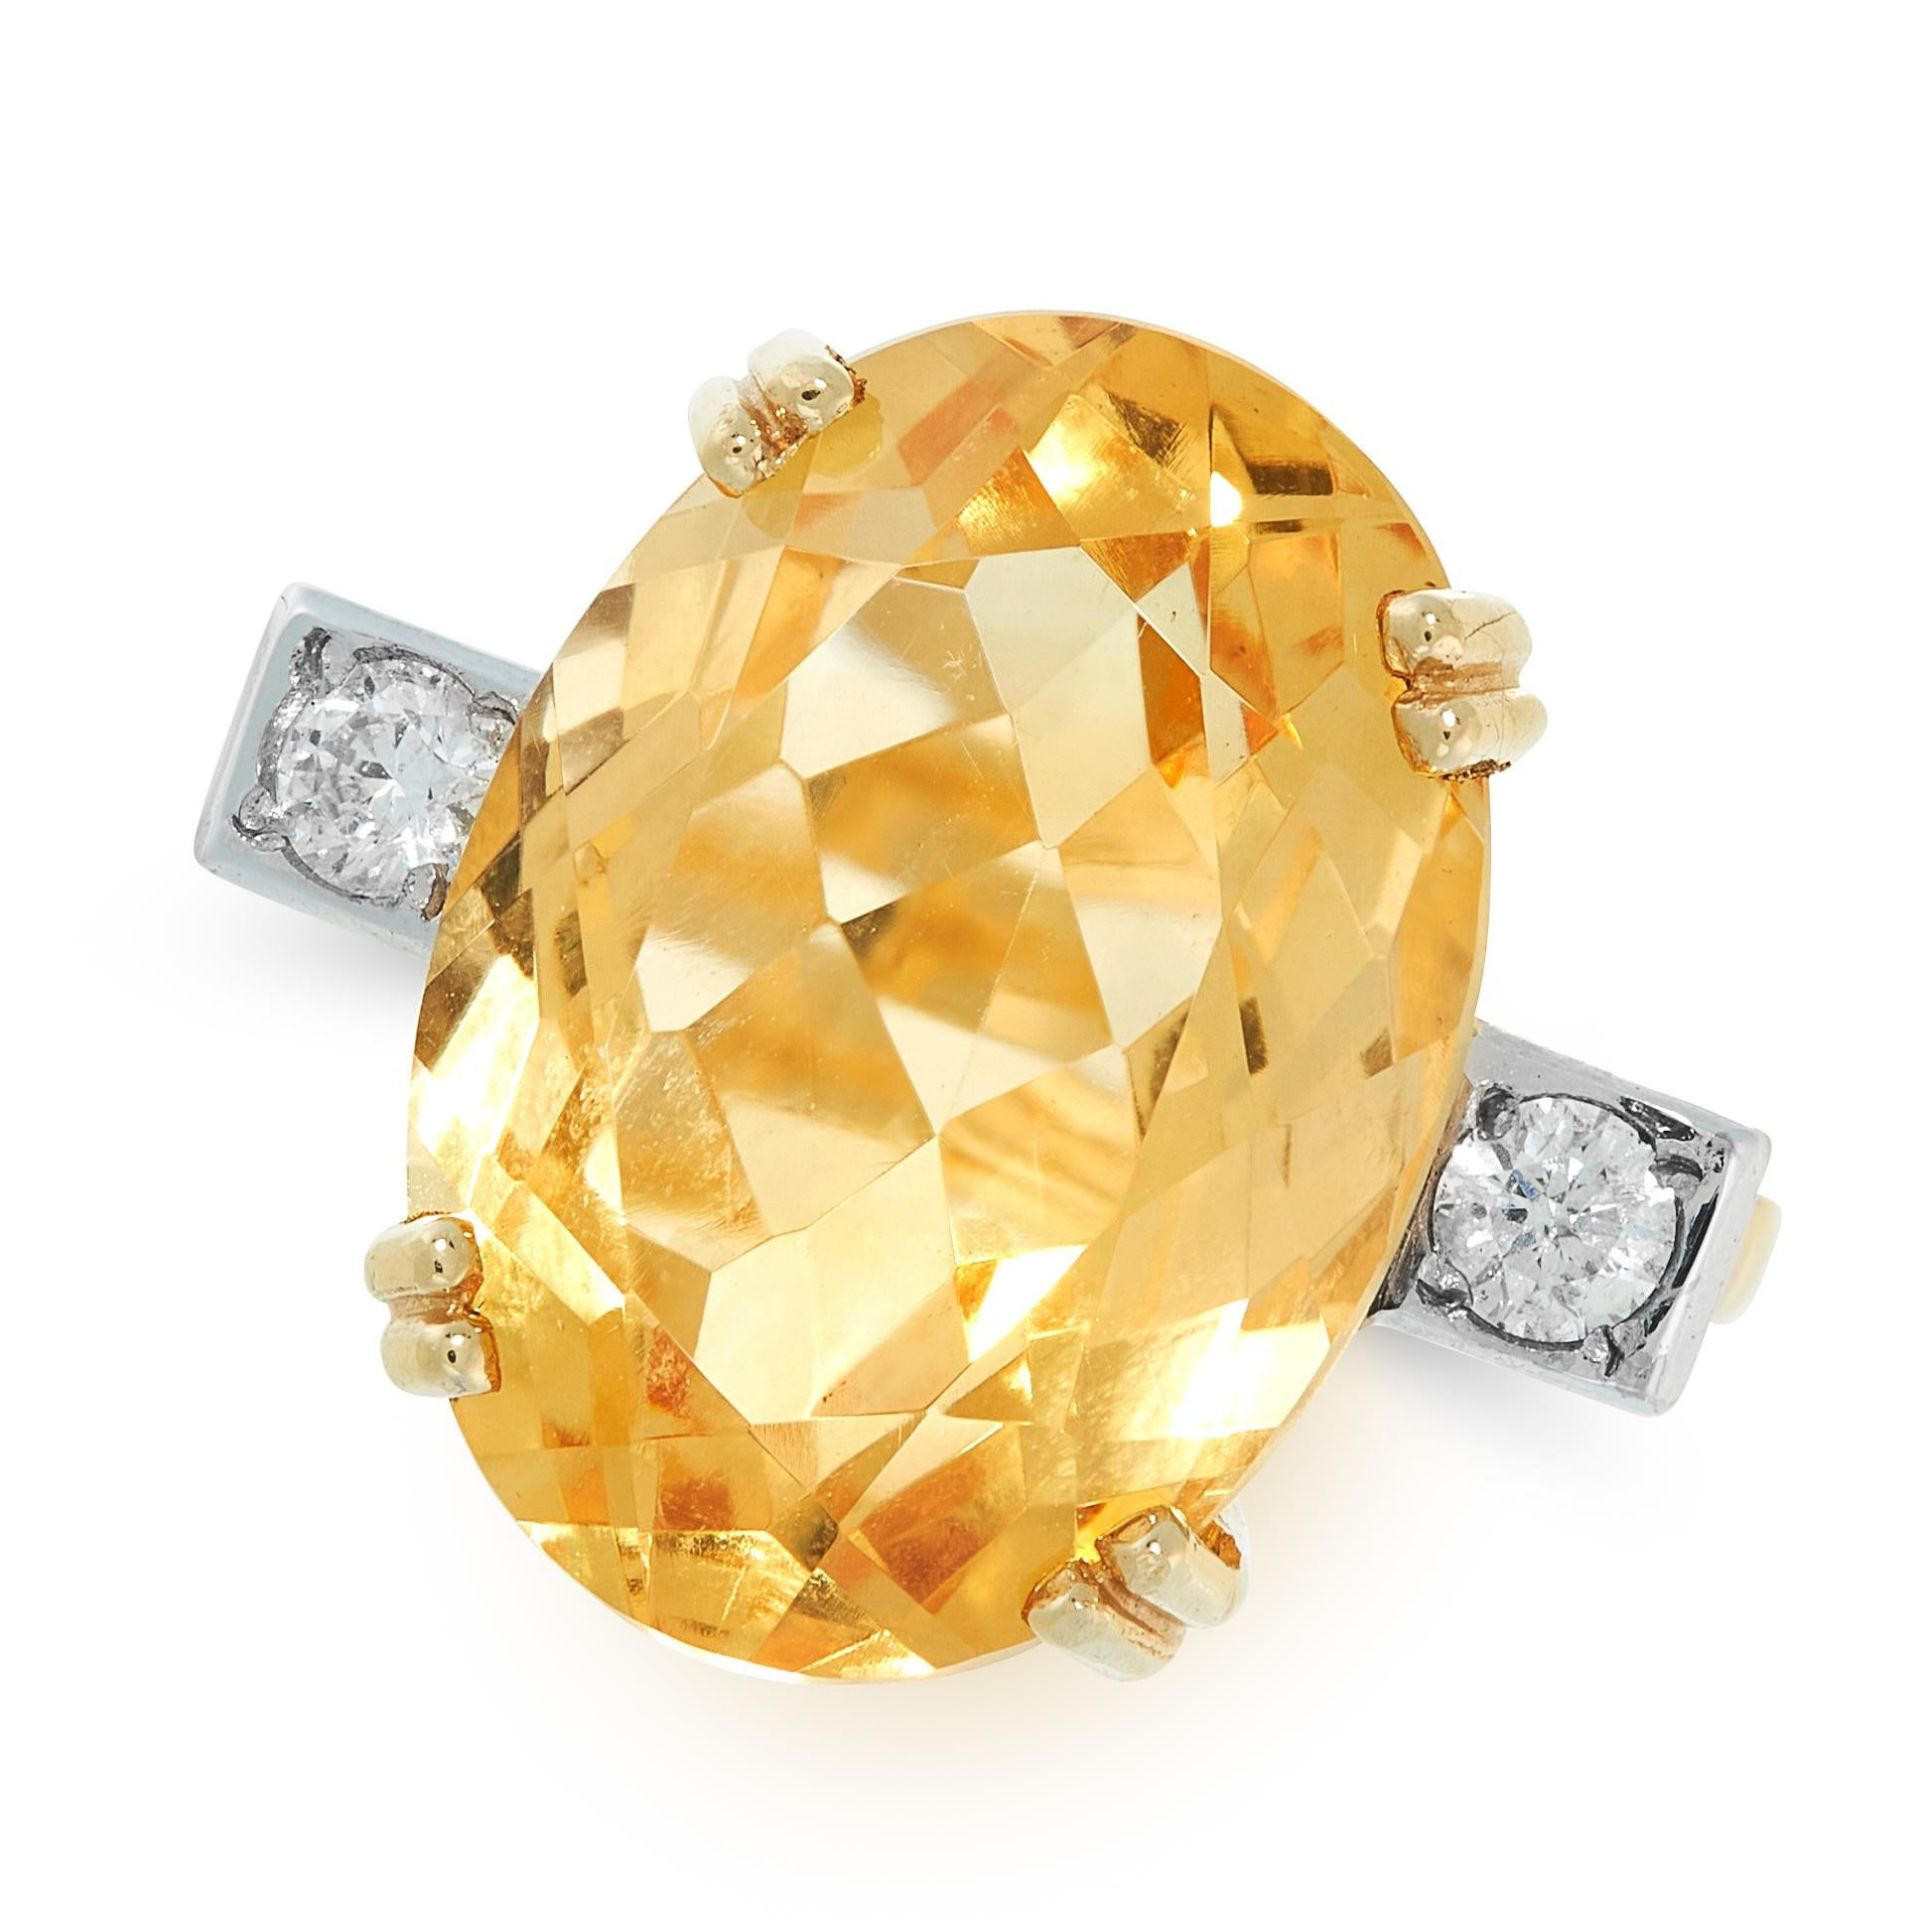 A CITRINE AND DIAMOND DRESS RING in 18ct yellow gold, set with an oval cut citrine between two round